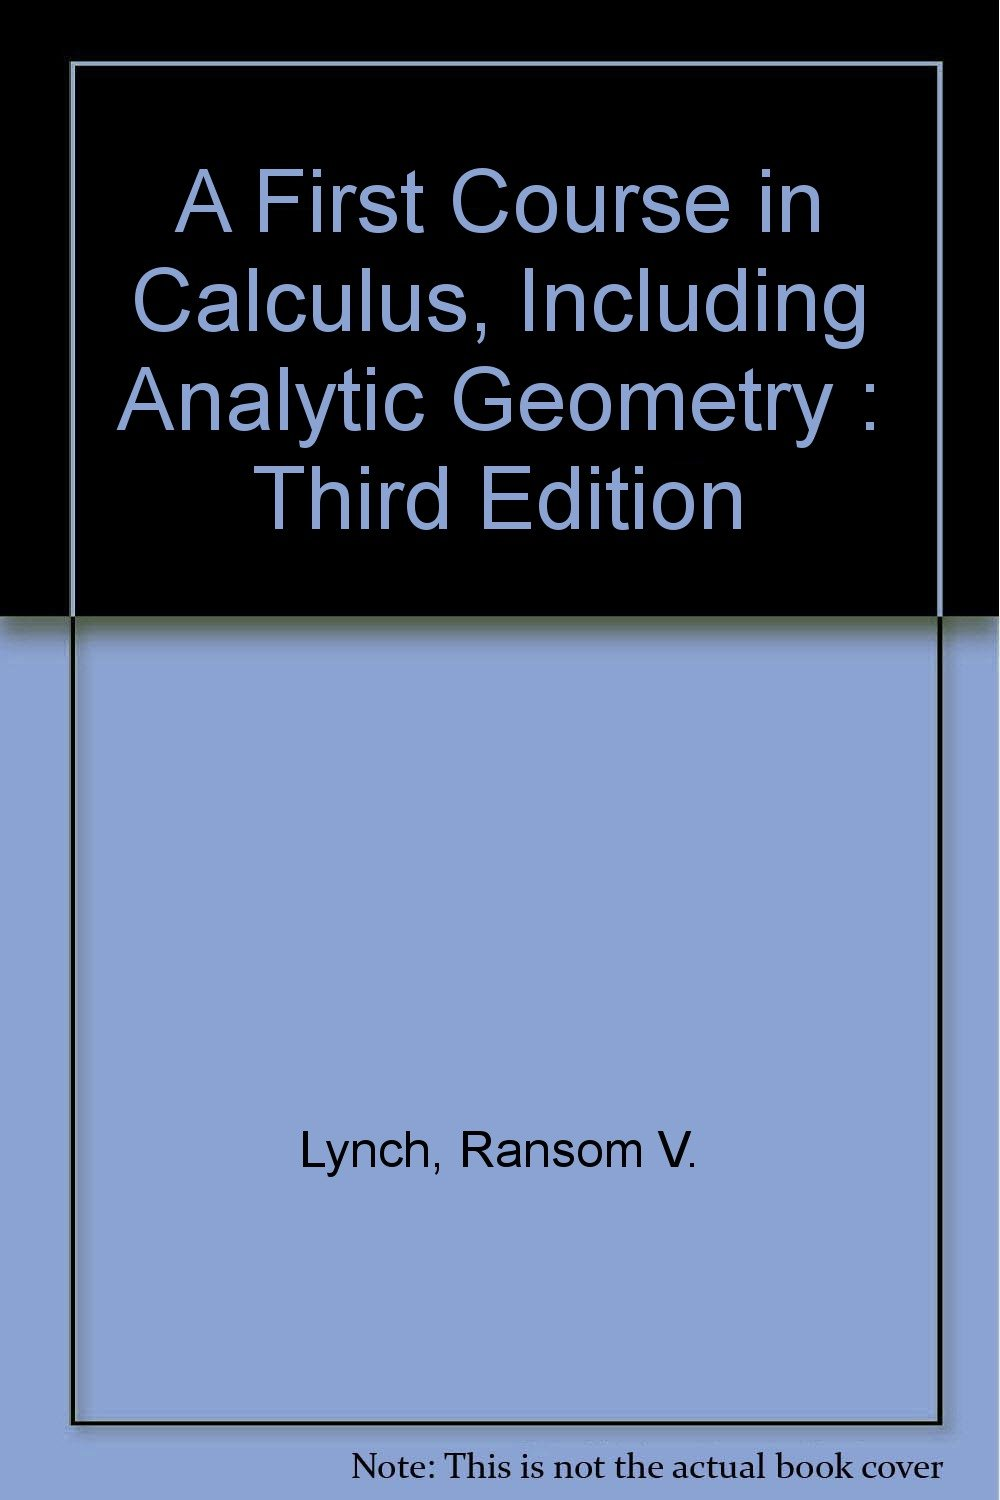 A First Course in Calculus, Including Analytic Geometry : Third Edition  Paperback – 1983